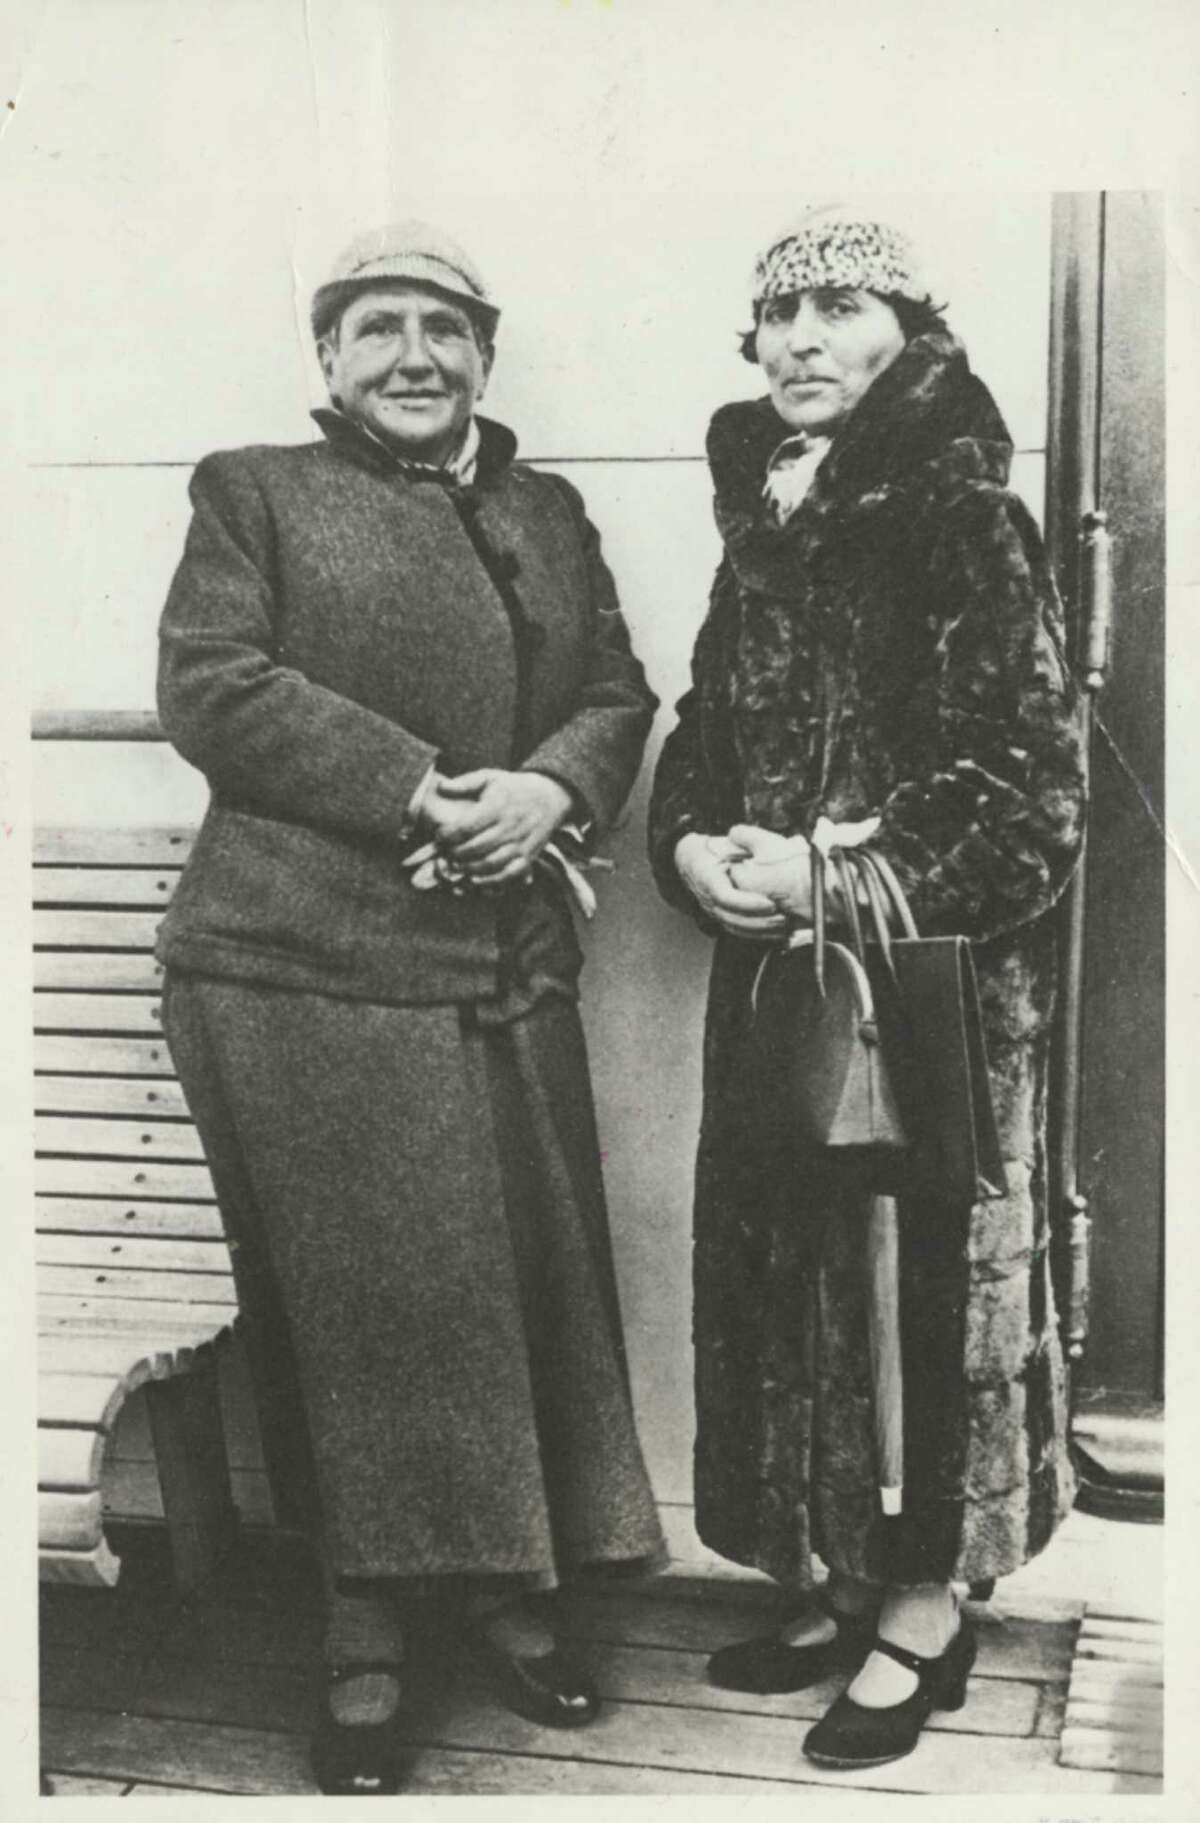 Gertrude Stein, left, and Alice B. Toklas arrive in New York on SS Champlain. Date unknown.